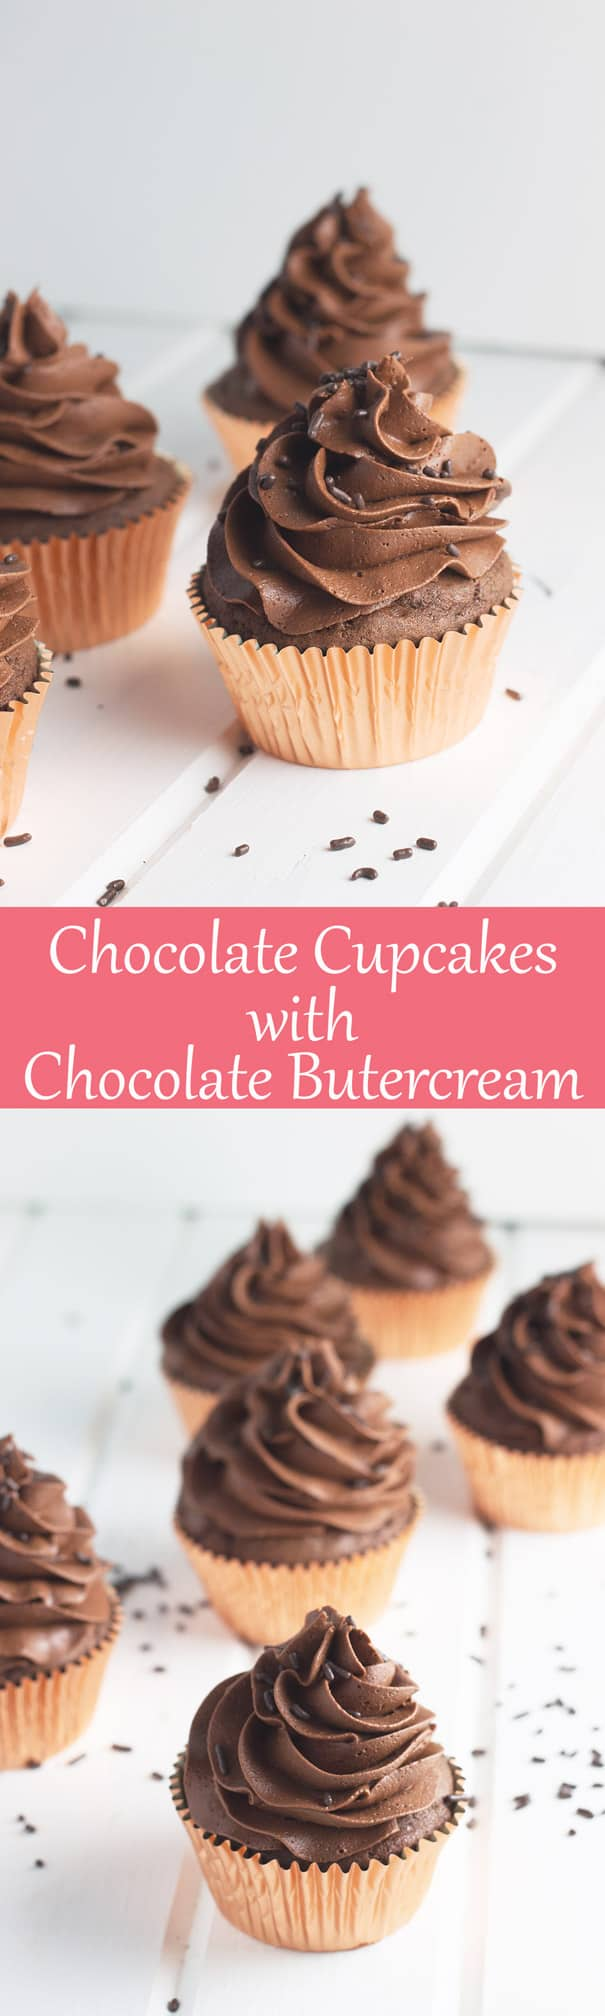 Chocolate Cupcakes with Chocolate Buttercream | Countryside Cravings